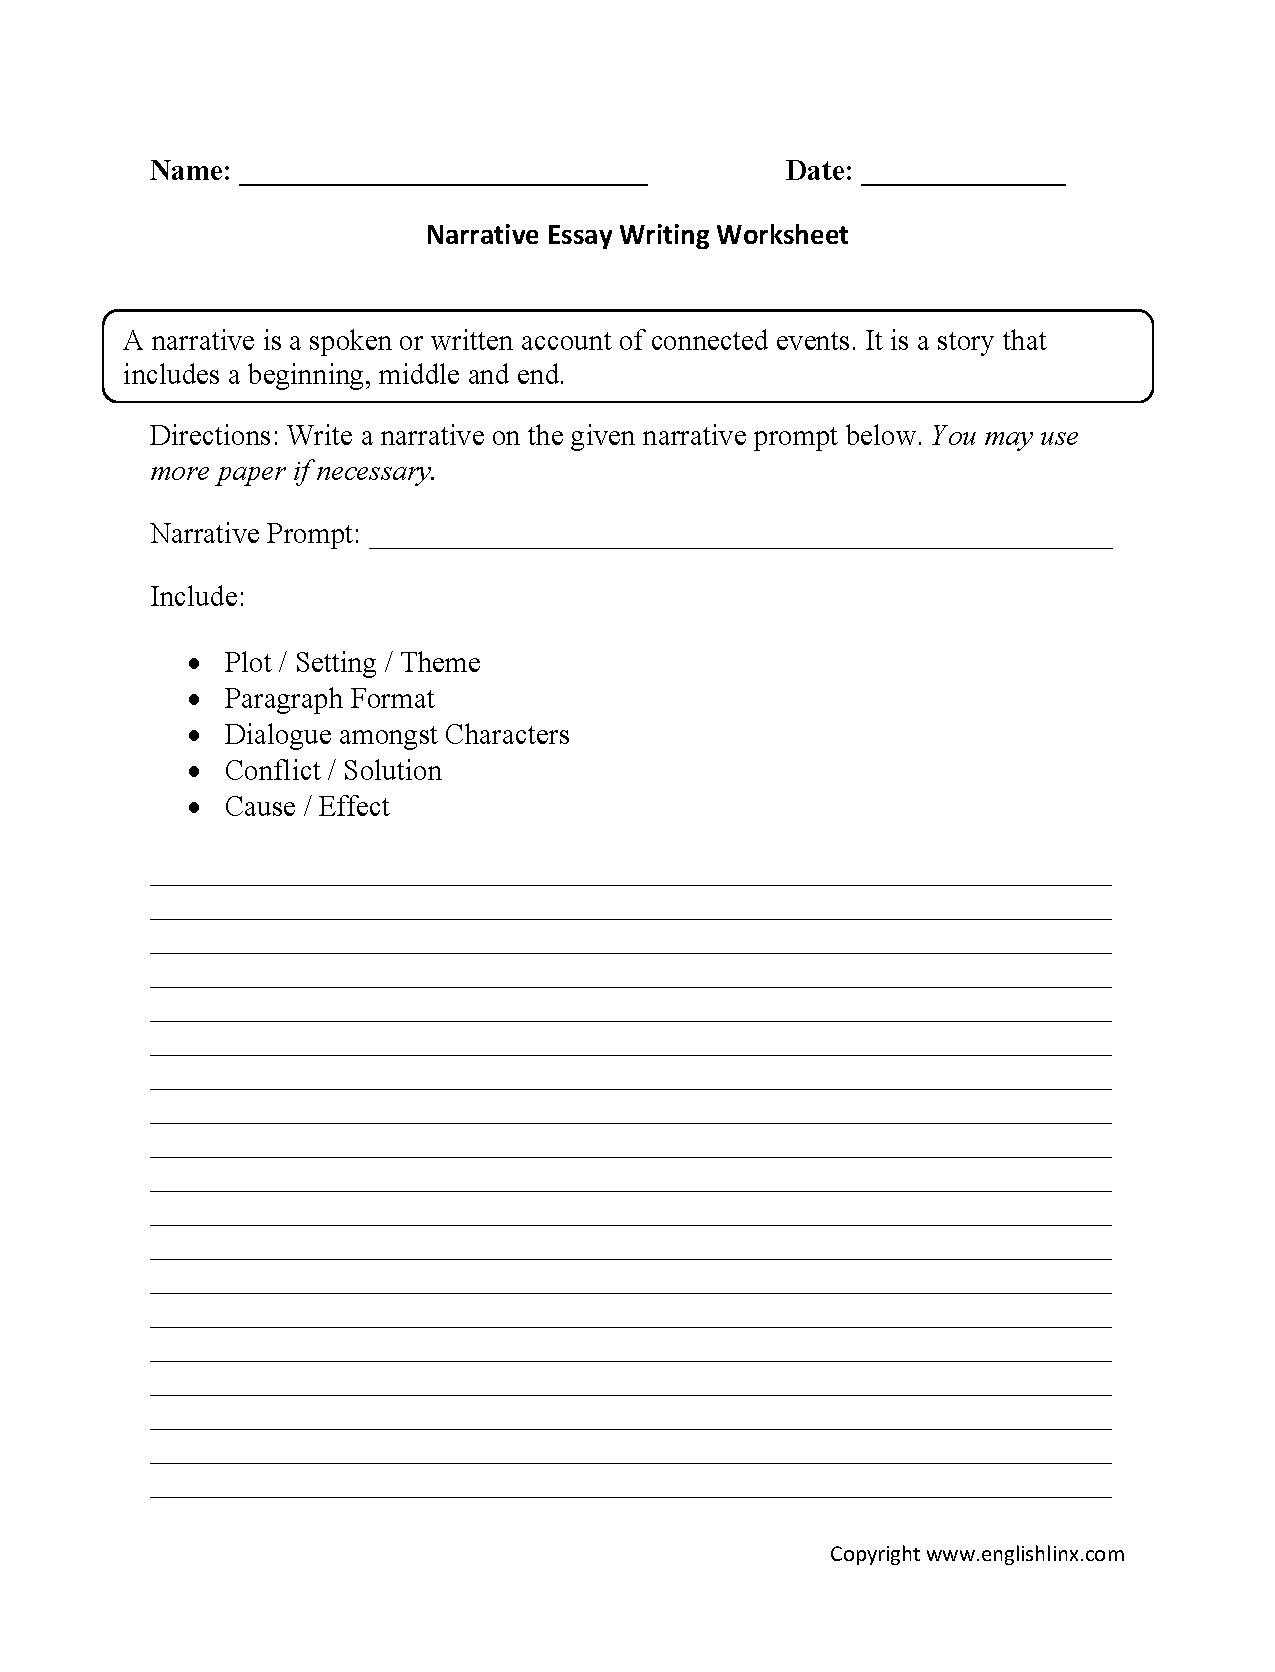 Worksheets Five Paragraph Essay Outline Worksheet basic 5 paragraph essay outline writing worksheets worksheets